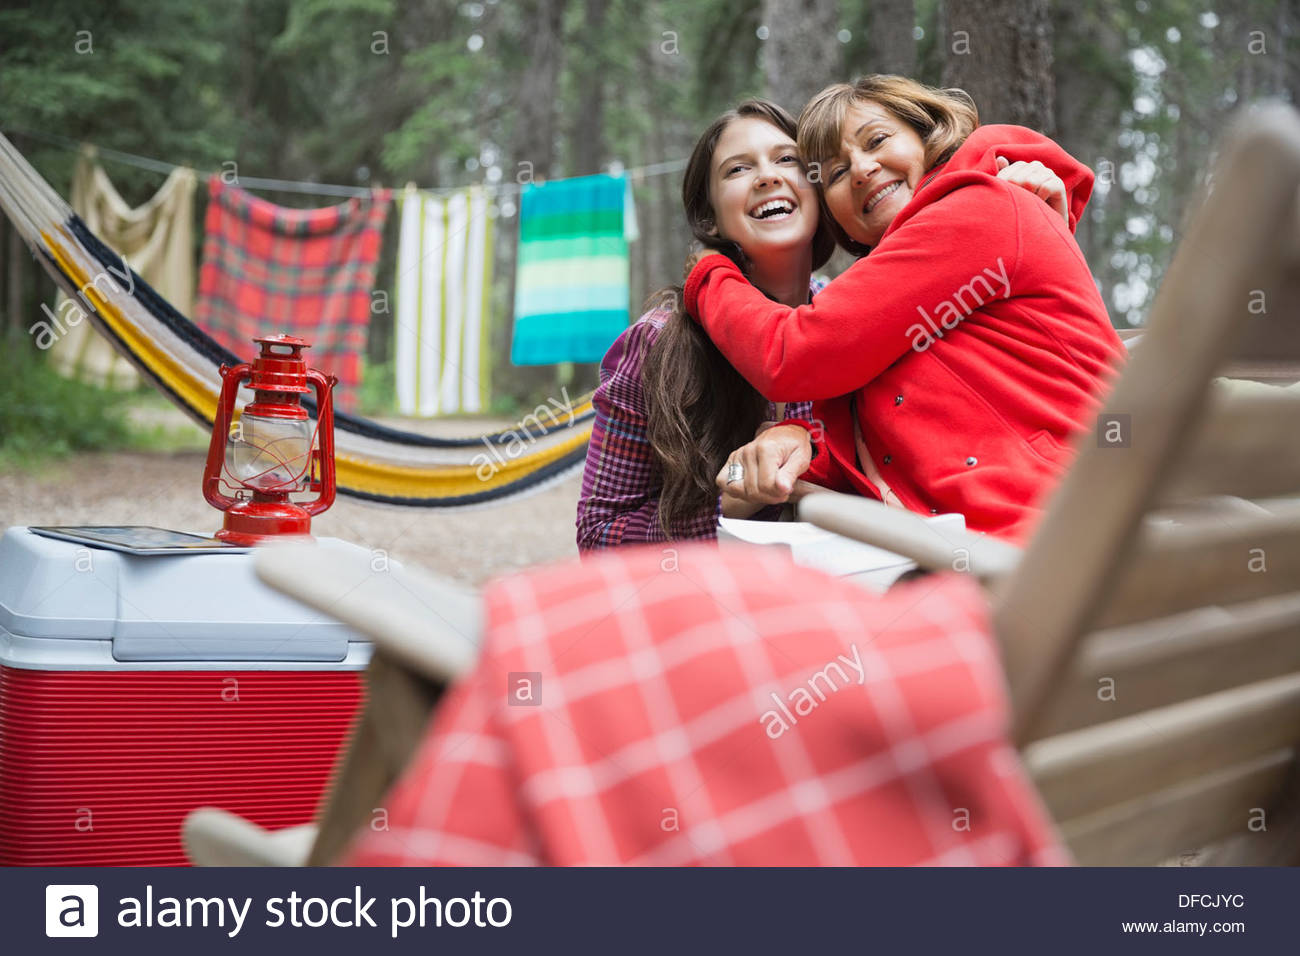 Affectionate grandmother and granddaughter at campsite - Stock Image